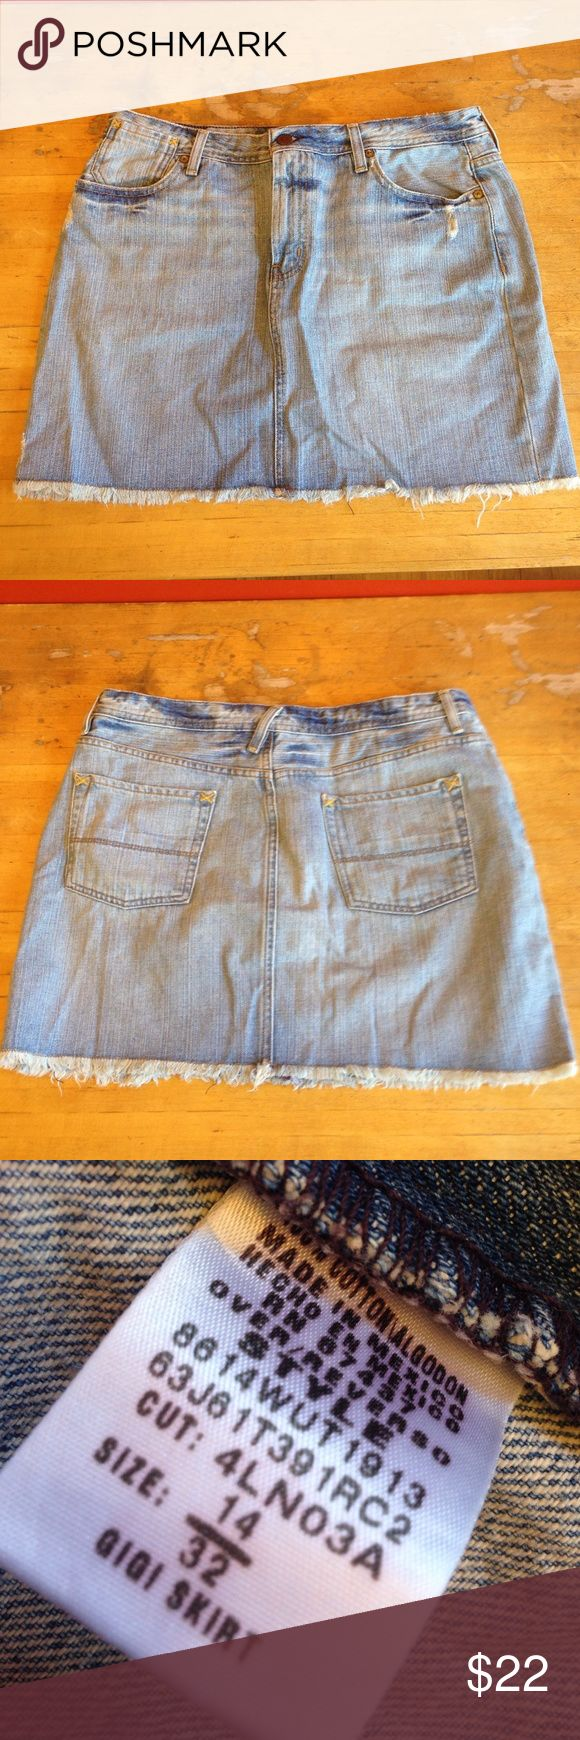 "Polo Jeans Co Denim Skirt Polo Jeans Co, denim Gigi skirt. Size 14. Two front pockets, two back pockets, belt loops. Material: 100% cotton. Measurements: waist: 16"", length: 15"". Pre-loved, beautiful condition, no flaws seen. polo jeans co Skirts Asymmetrical"